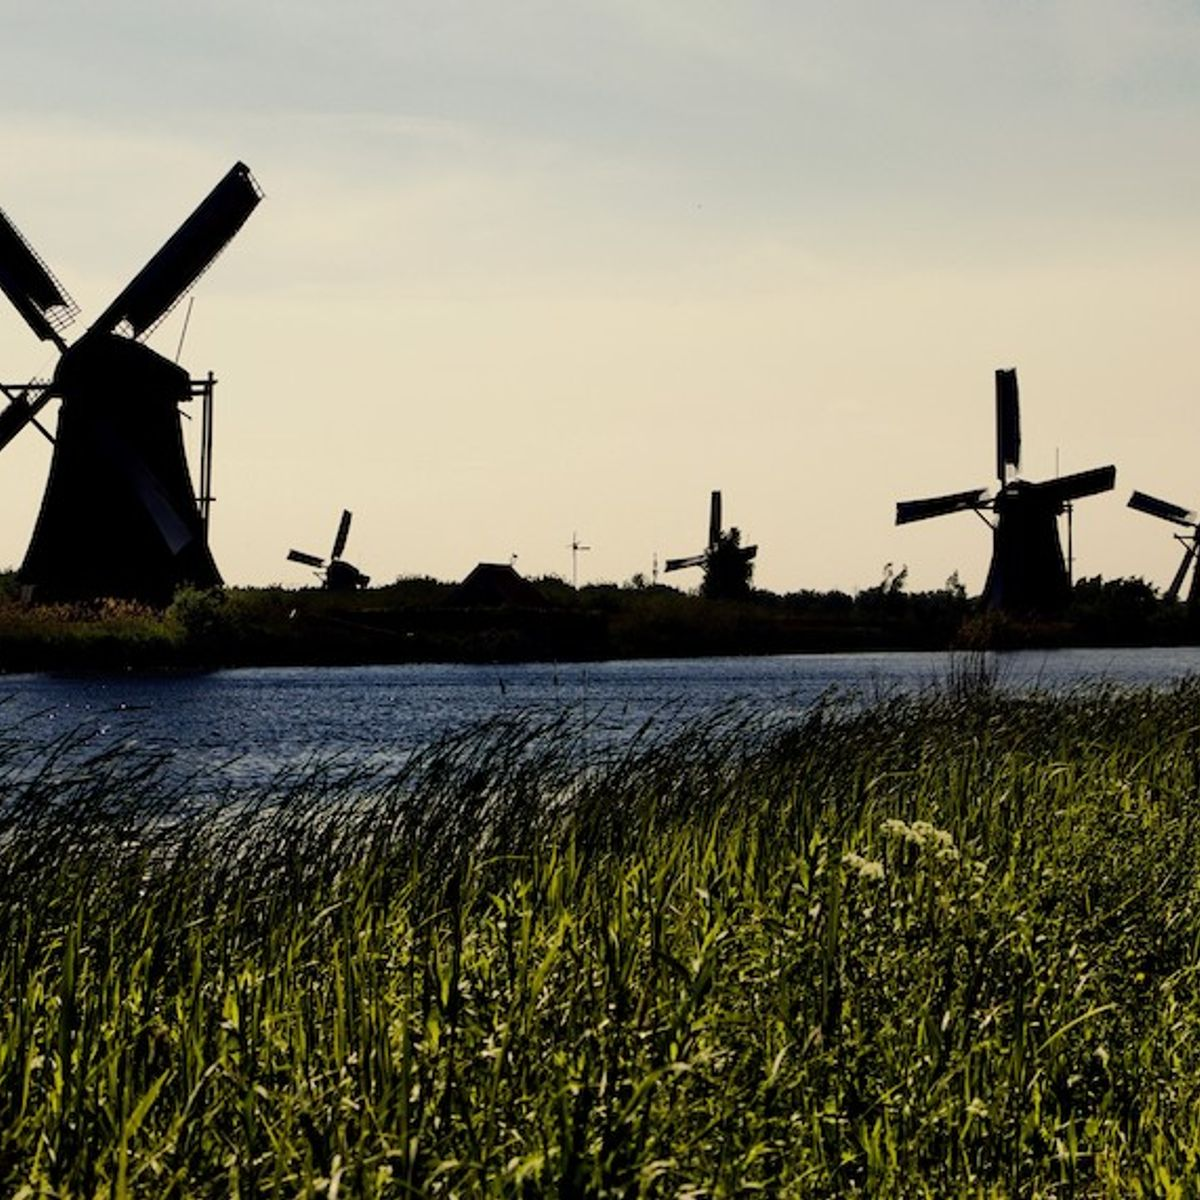 Blowing in the wind: Why the Netherlands is sinking